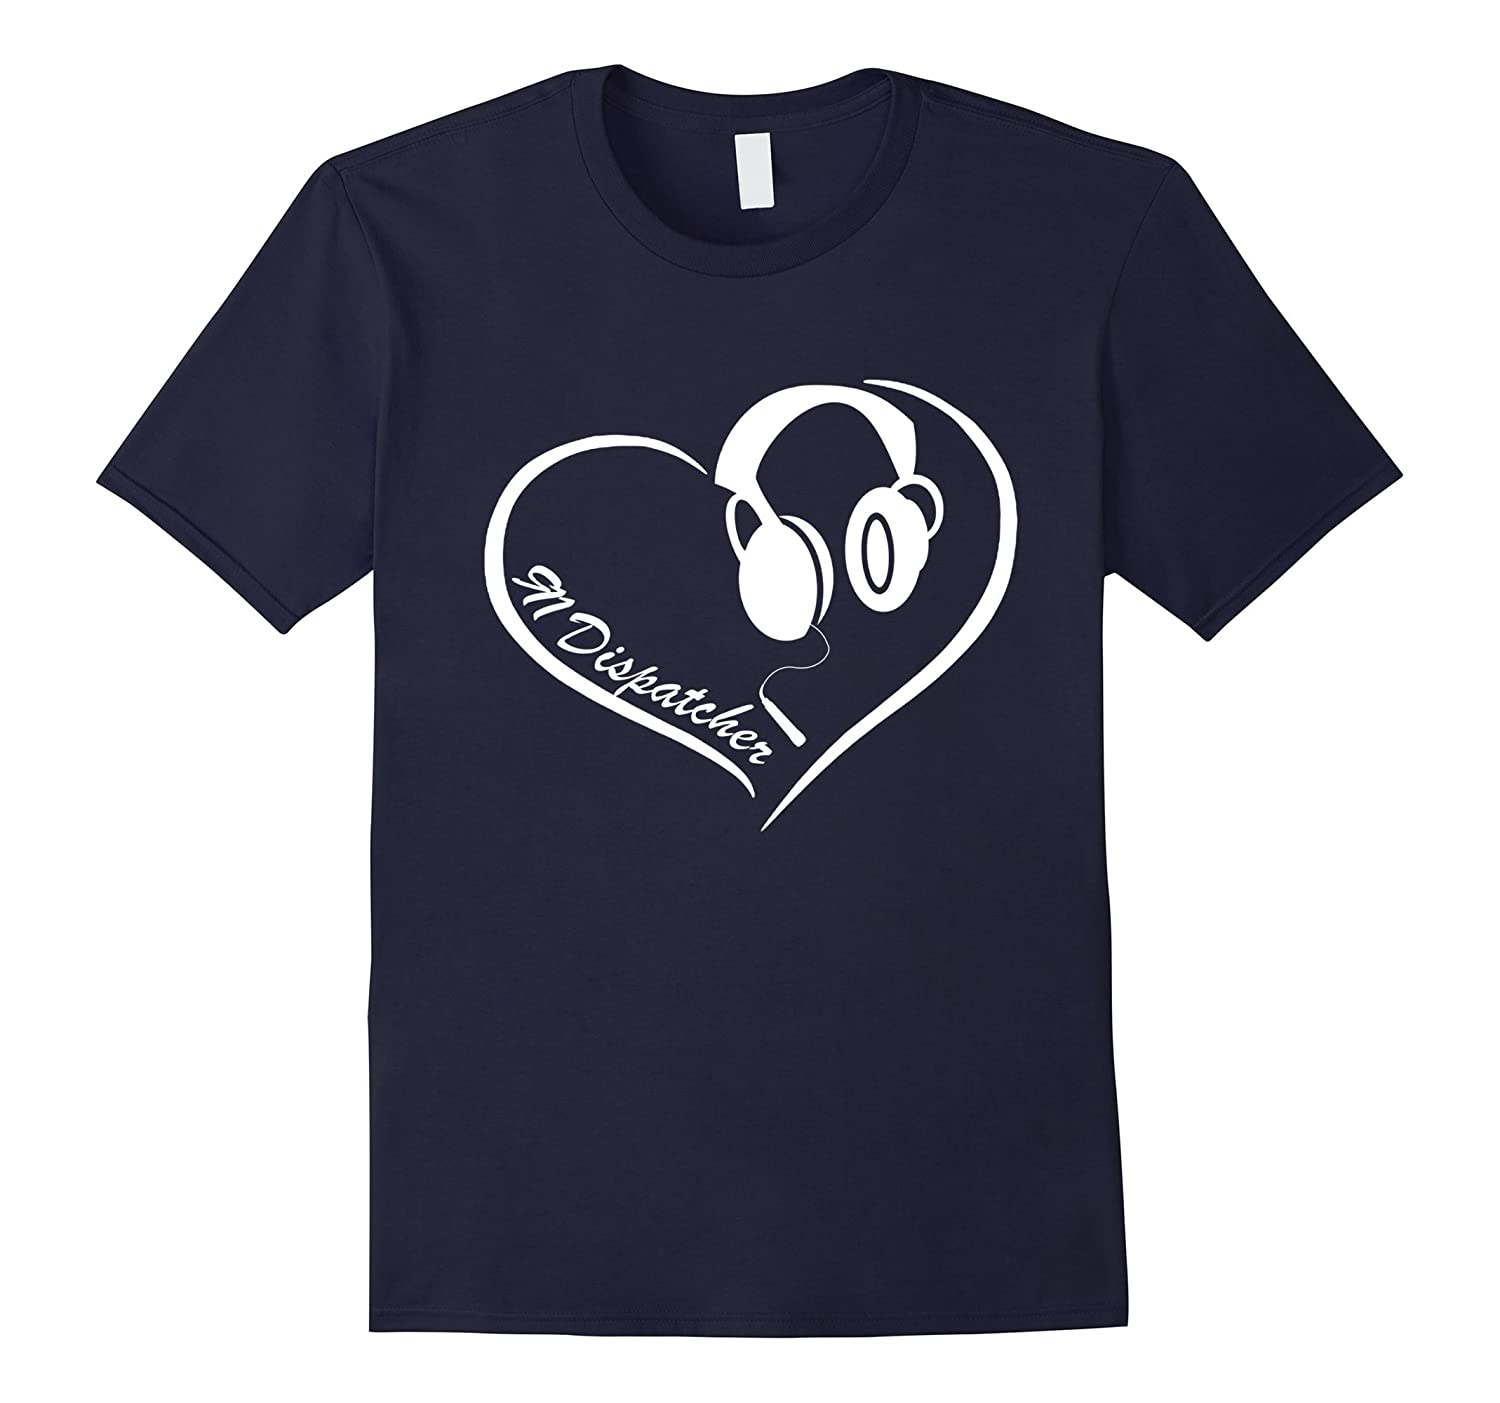 911 Dispatcher Shirts - 911 Dispatcher Heart T-shirt-BN